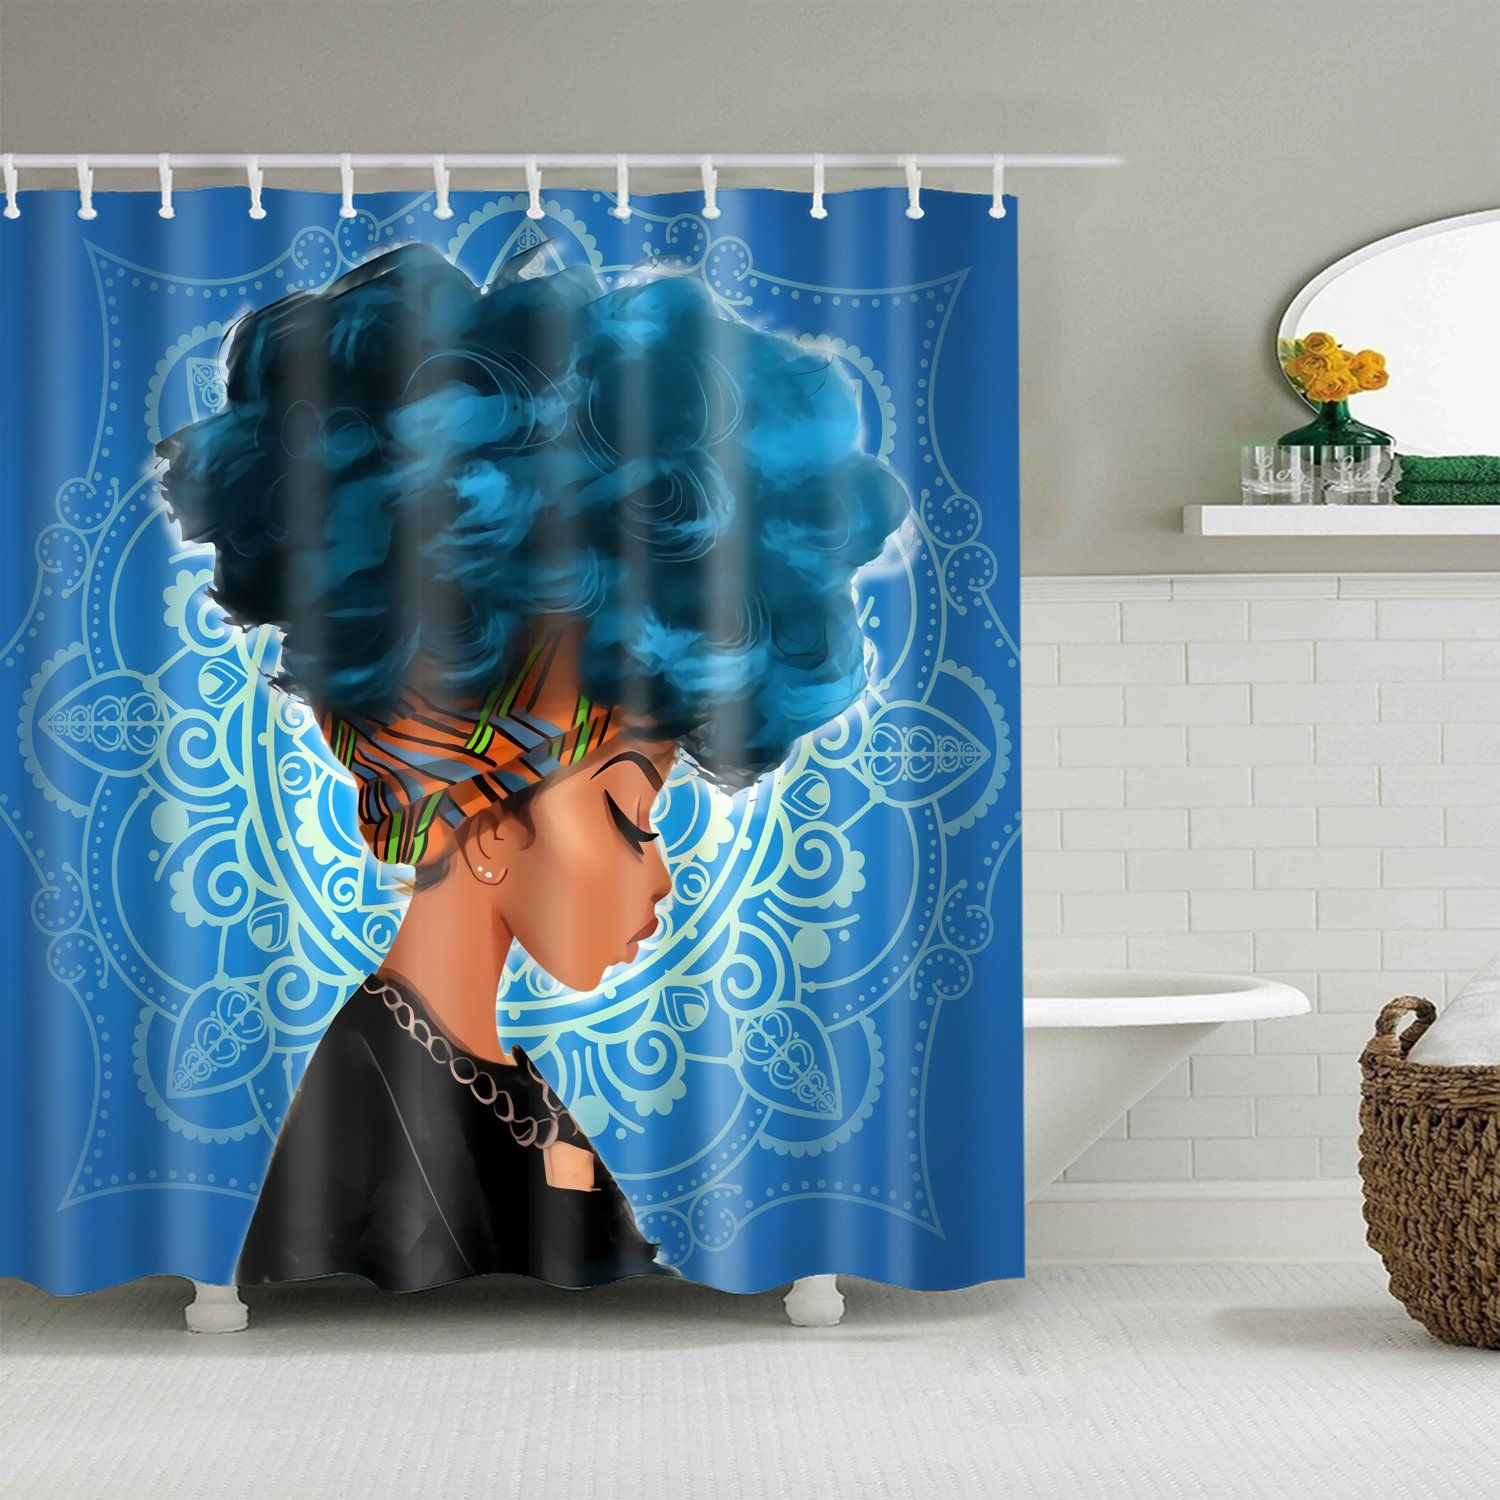 Afro African Black Girl Magic Shower Curtain Bathroom Decor Afro Shower Curtain Girl Bathroom Decor Girls Shower Curtain